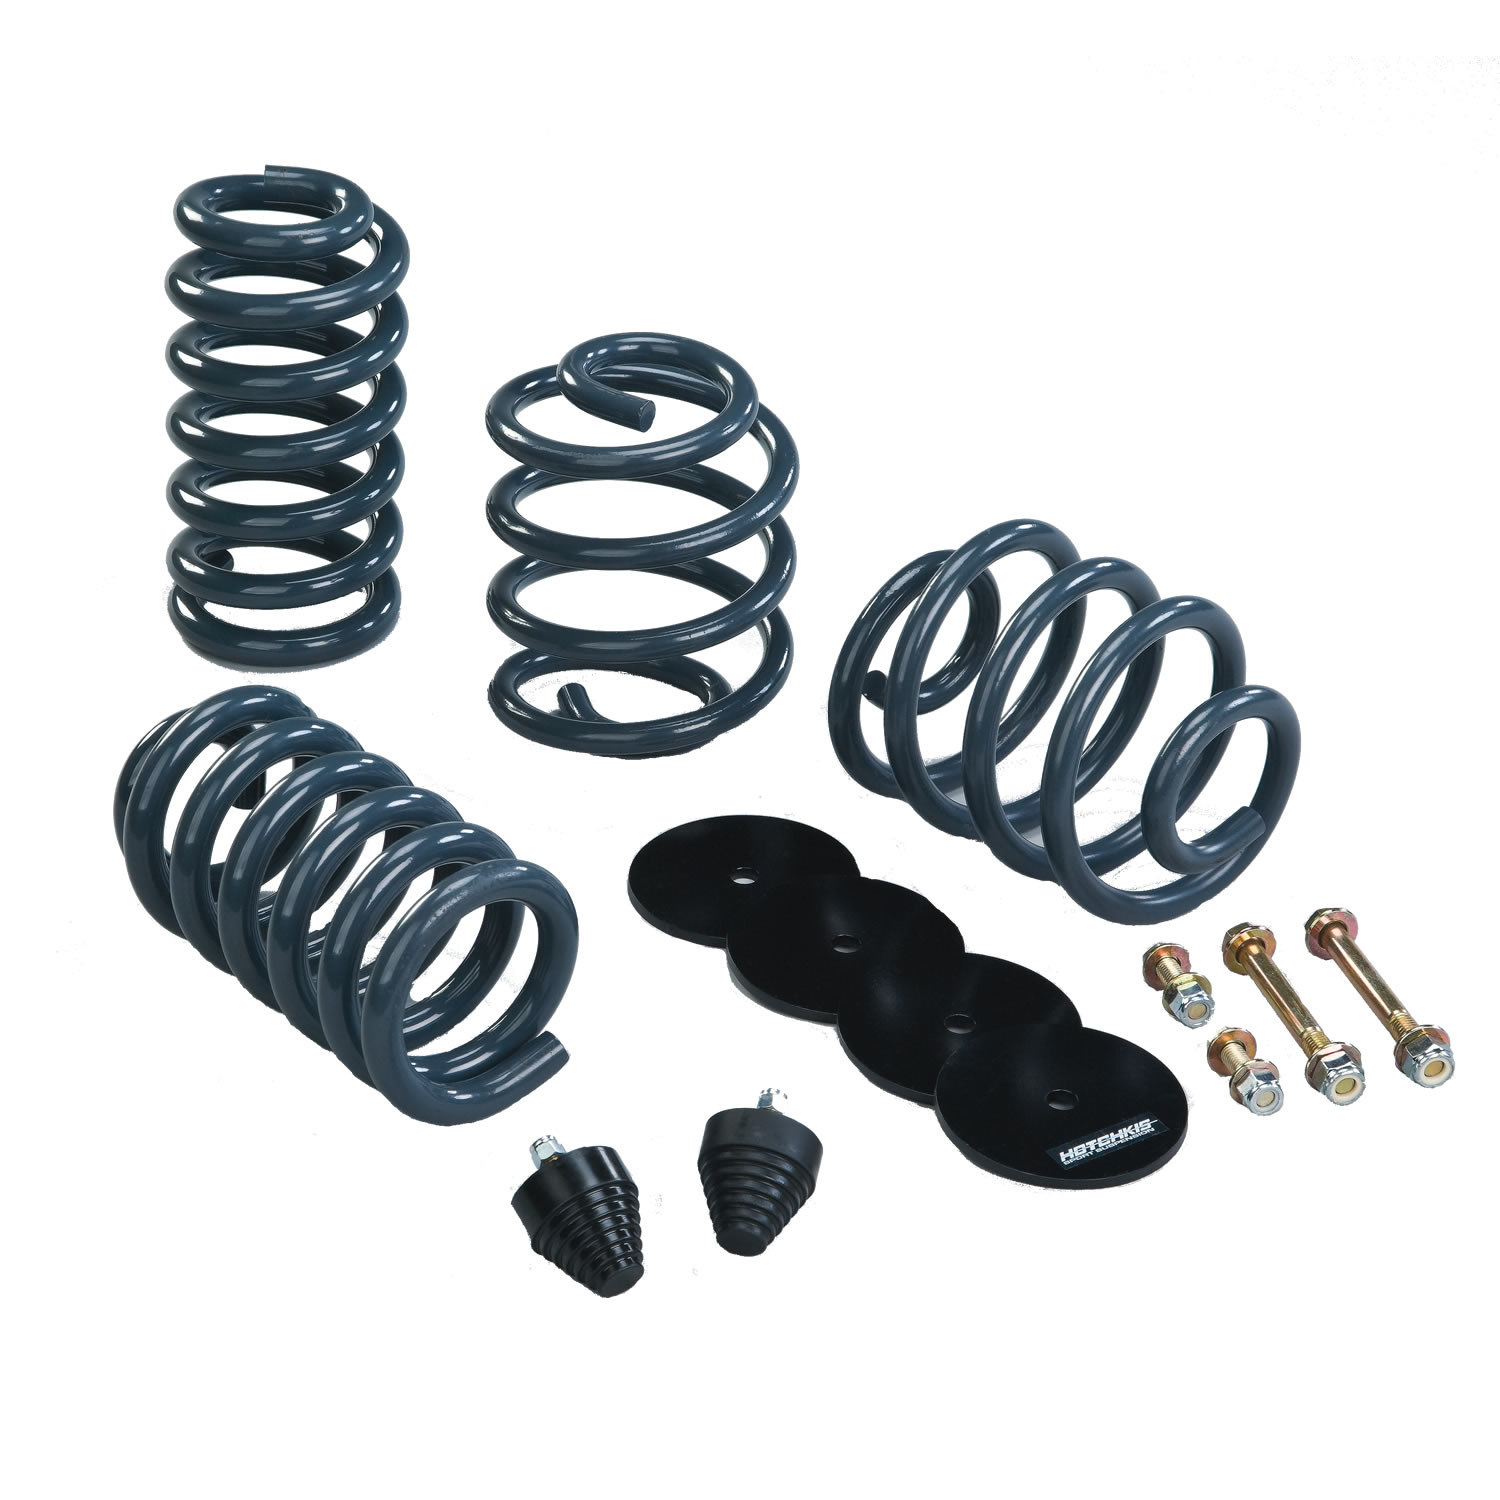 Hotchkis Sport Suspension Systems Parts And Complete Bolt In 1968 Chevy C10 Spring Set